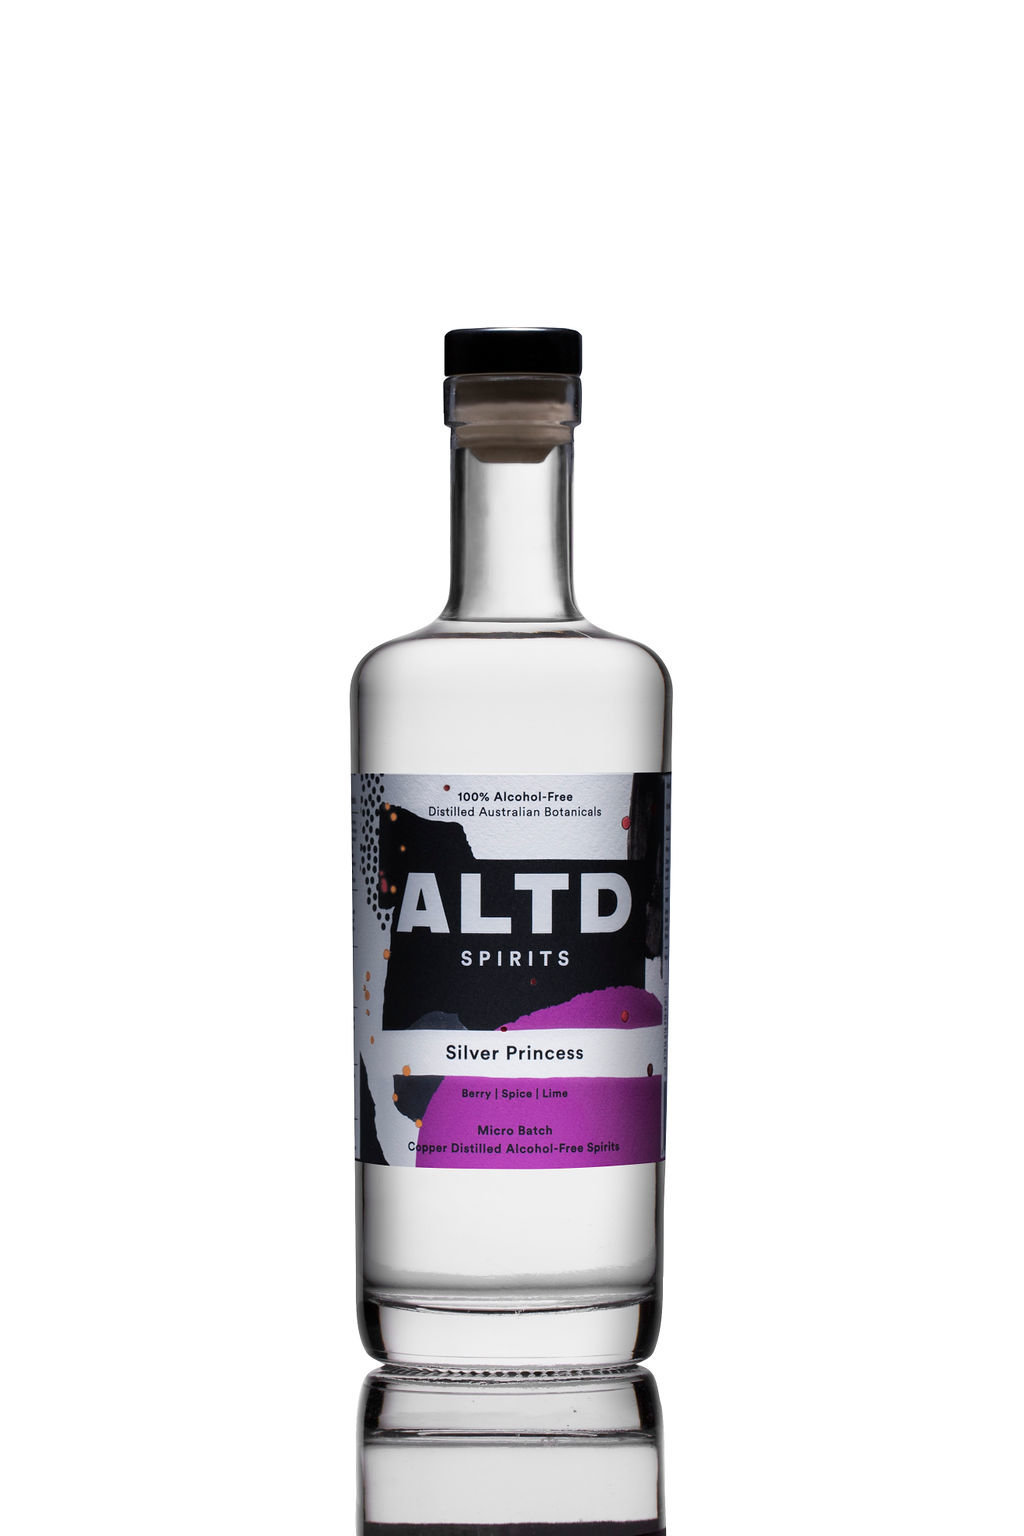 Emma Duzhnikov bottle photography product photographer ALTD spirits Australia SilverPrincess